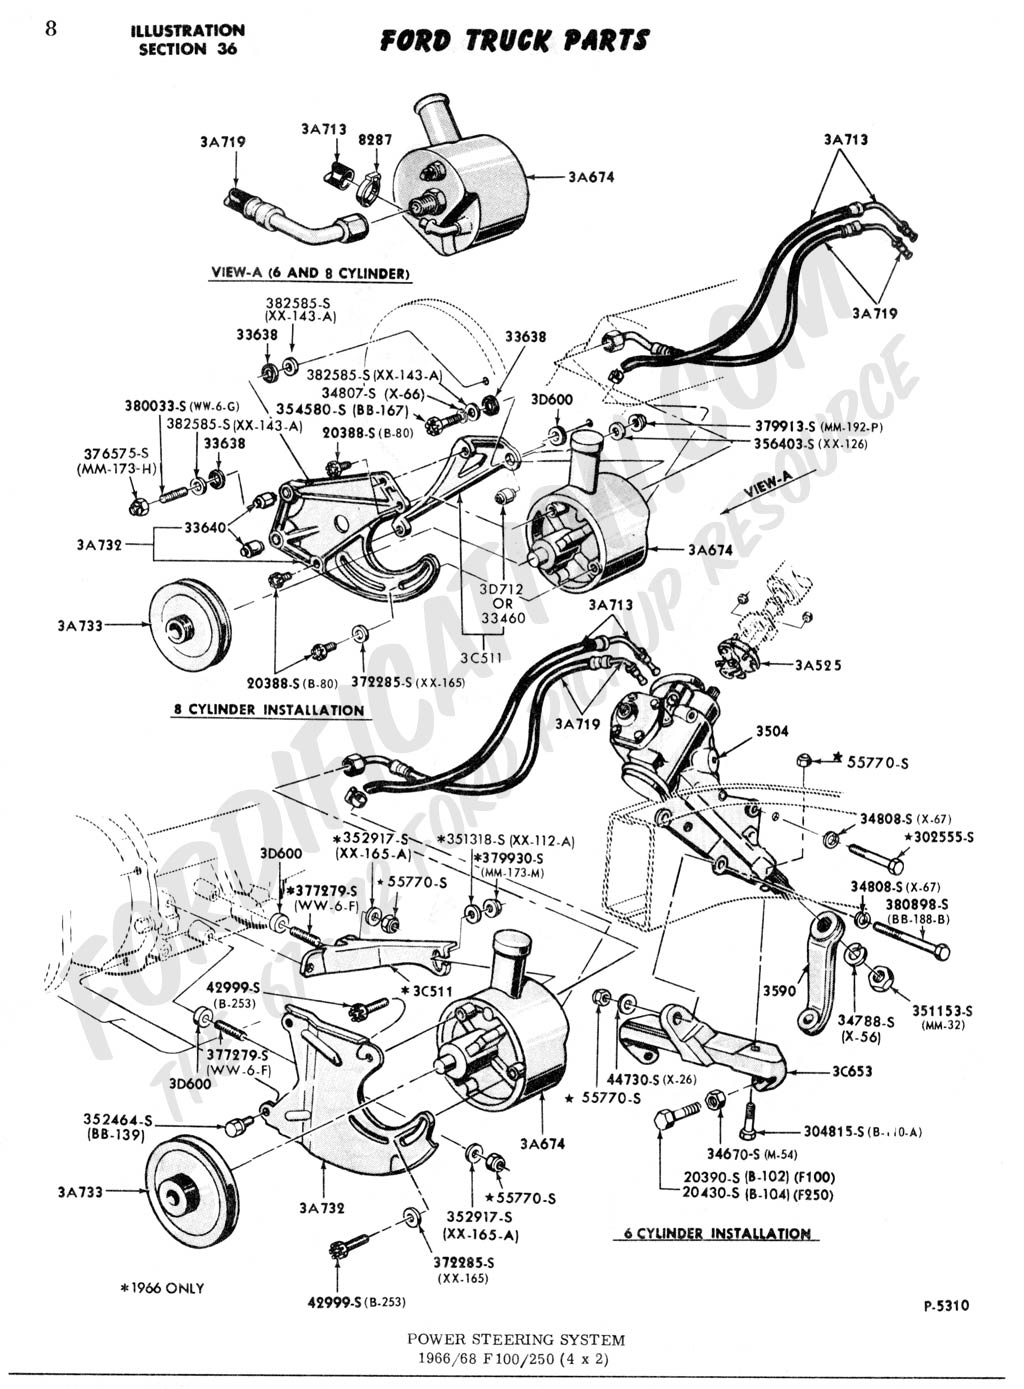 Camaro Car Parts Diagram On 1966 Ford Mustang Vacuum Line Diagram